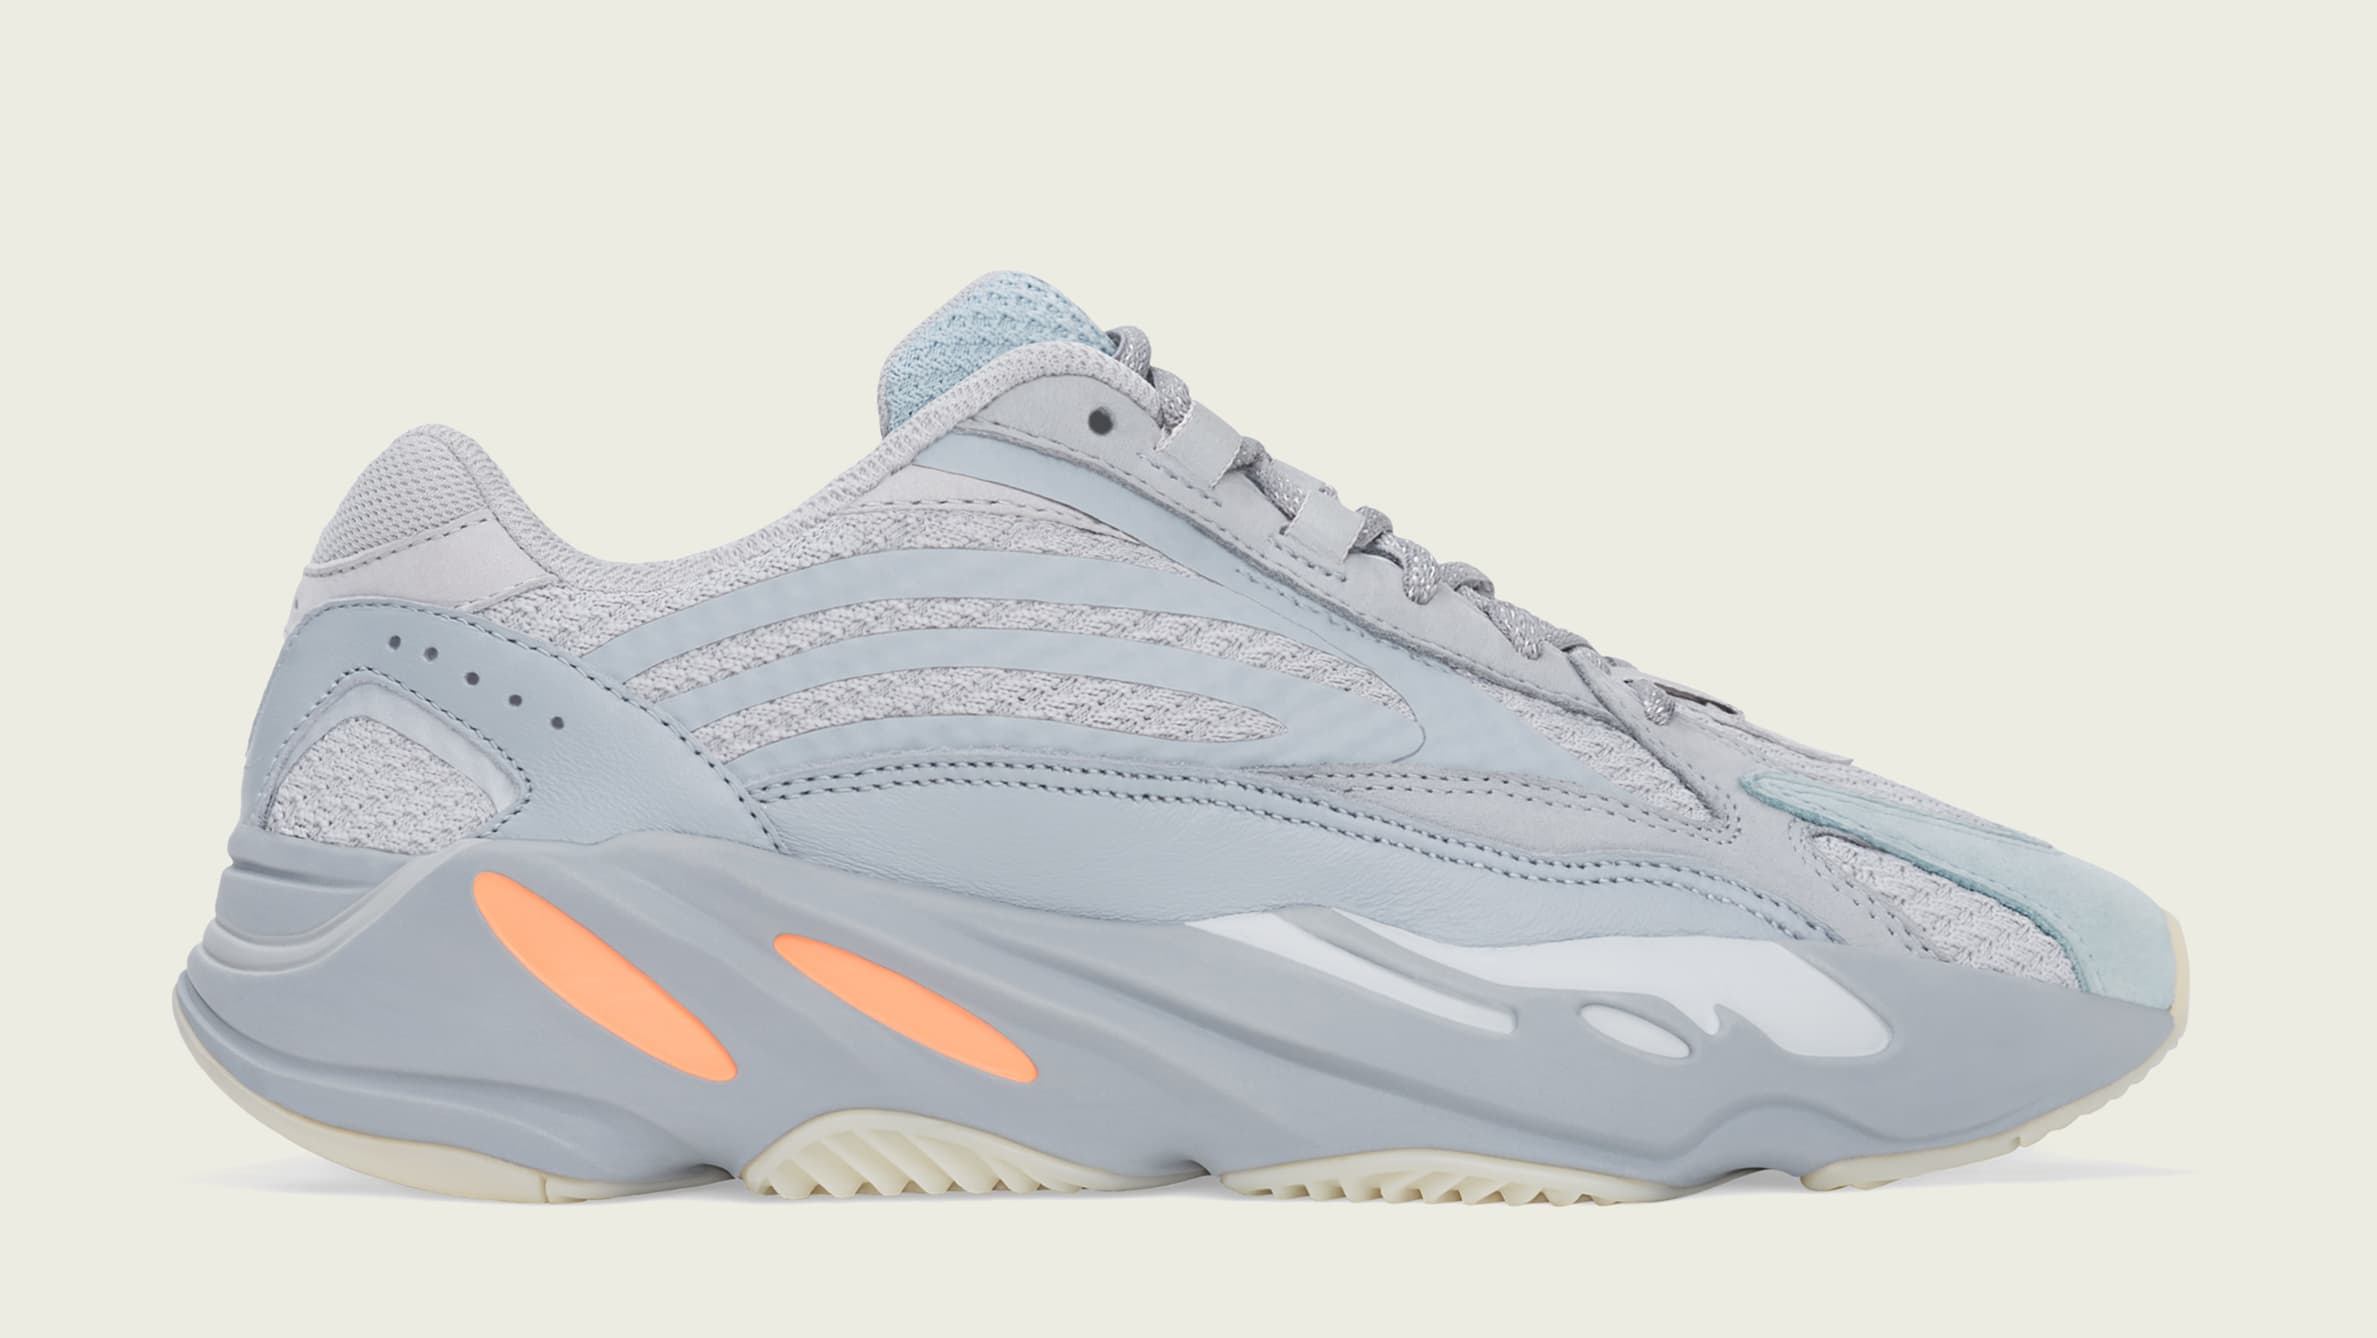 Adidas Yeezy Boost 700 V2 'Inertia' FW2549 (Right Shoe)